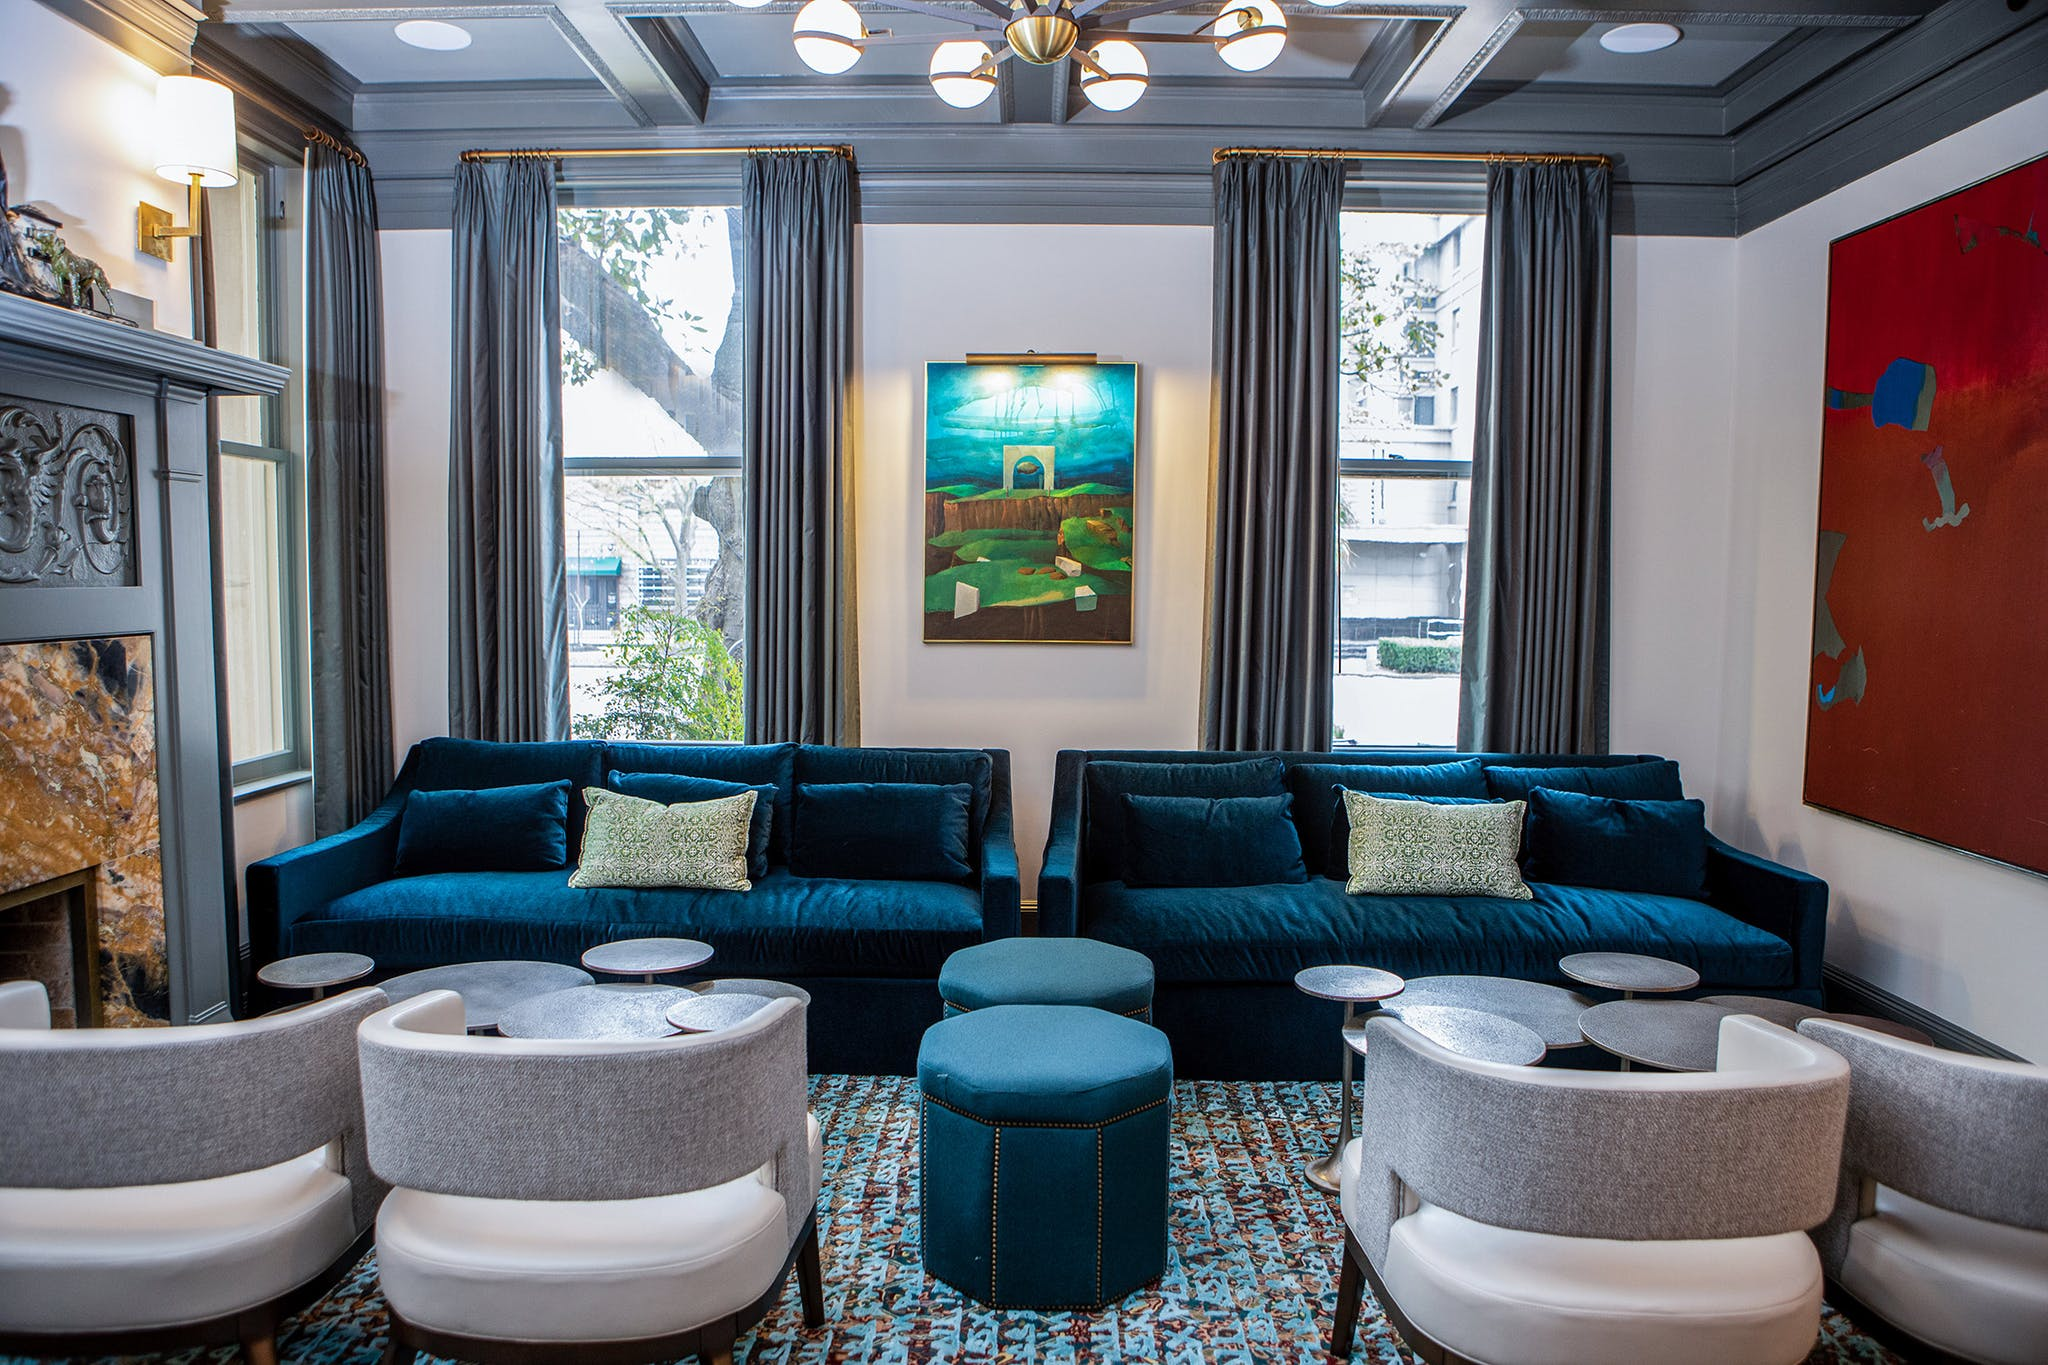 In the lounge, which was originally built as a library, a painting by Texas artist Lucas Johnson shares space with one by fellow Texan Dorothy Hood.